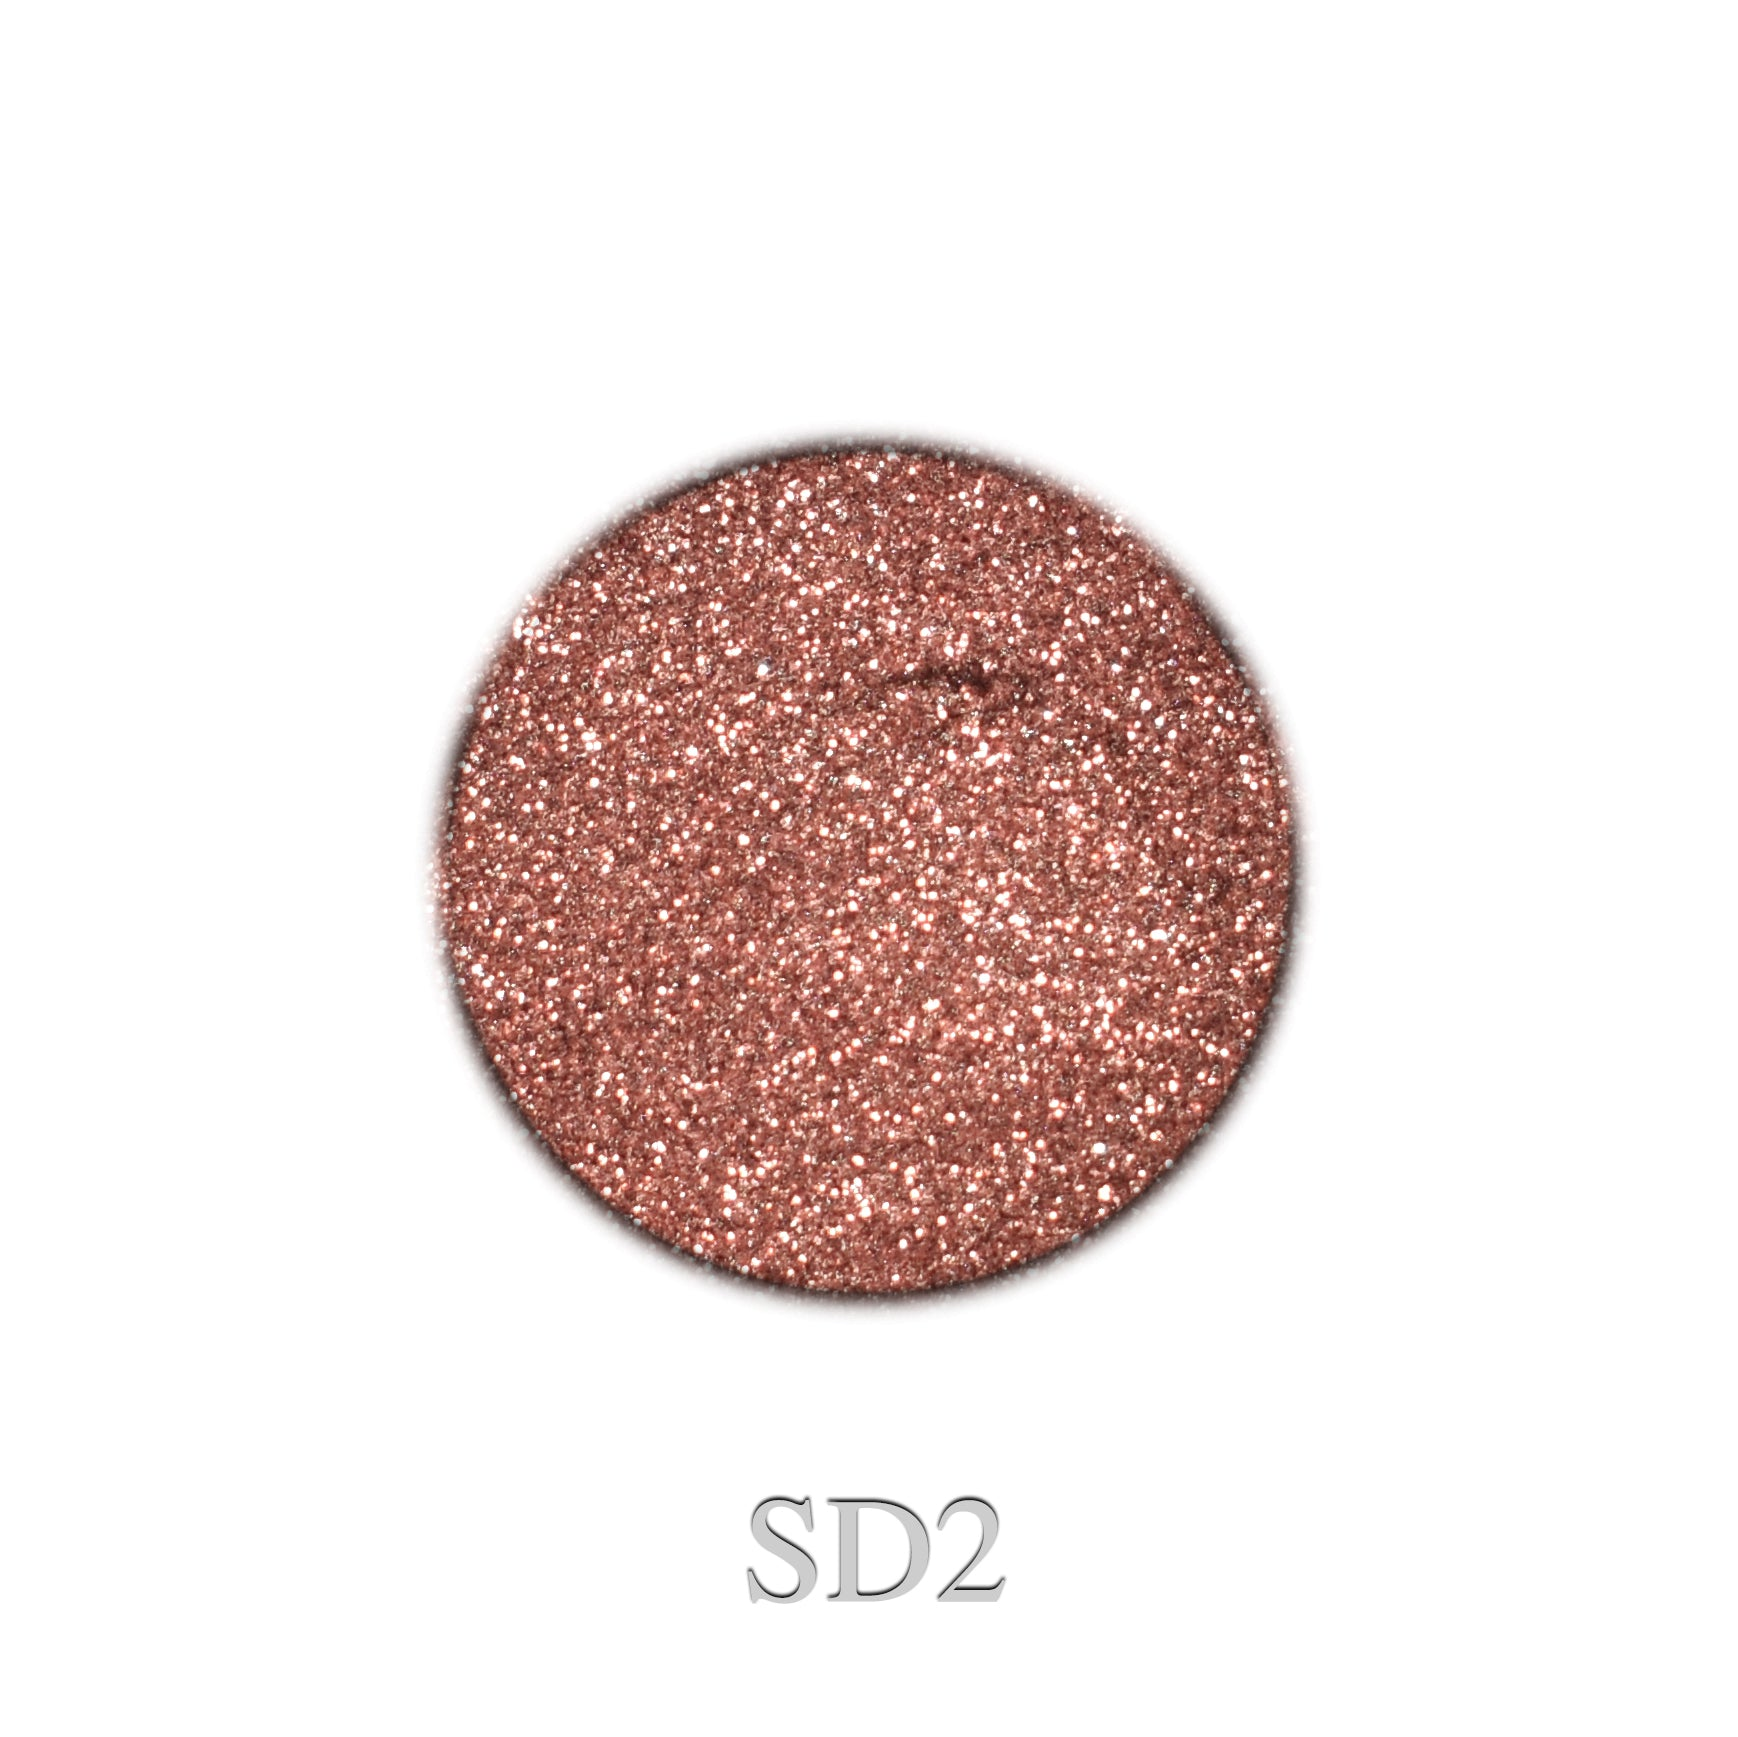 Rose Gold SD2